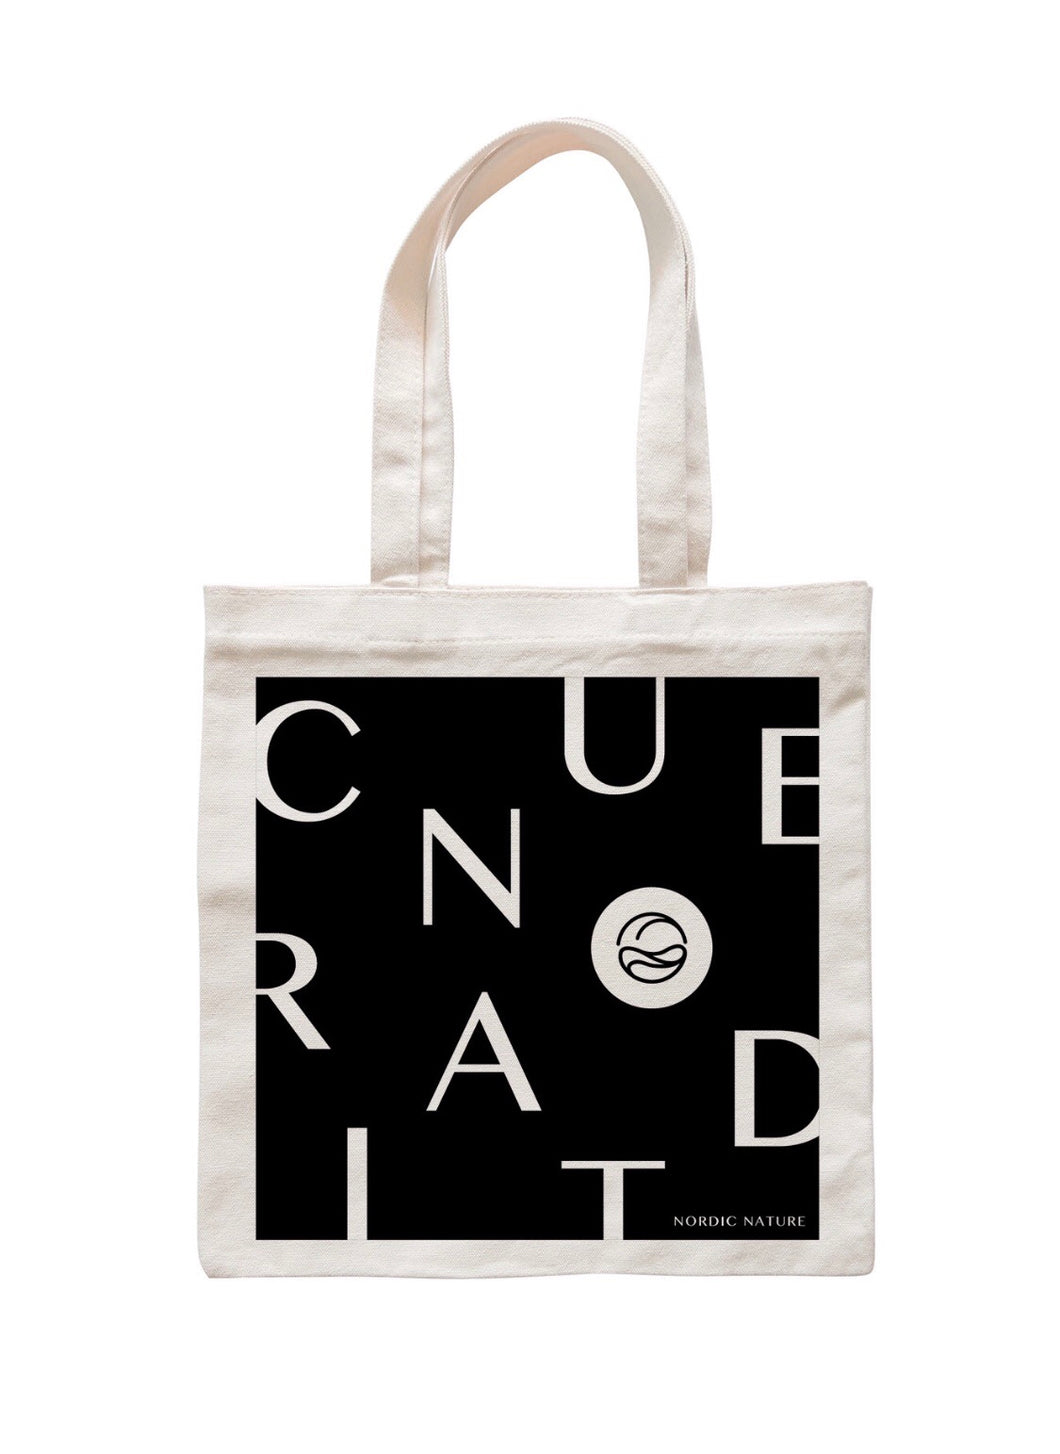 LIMITED EDITION - NORDIC NATURE TOTE